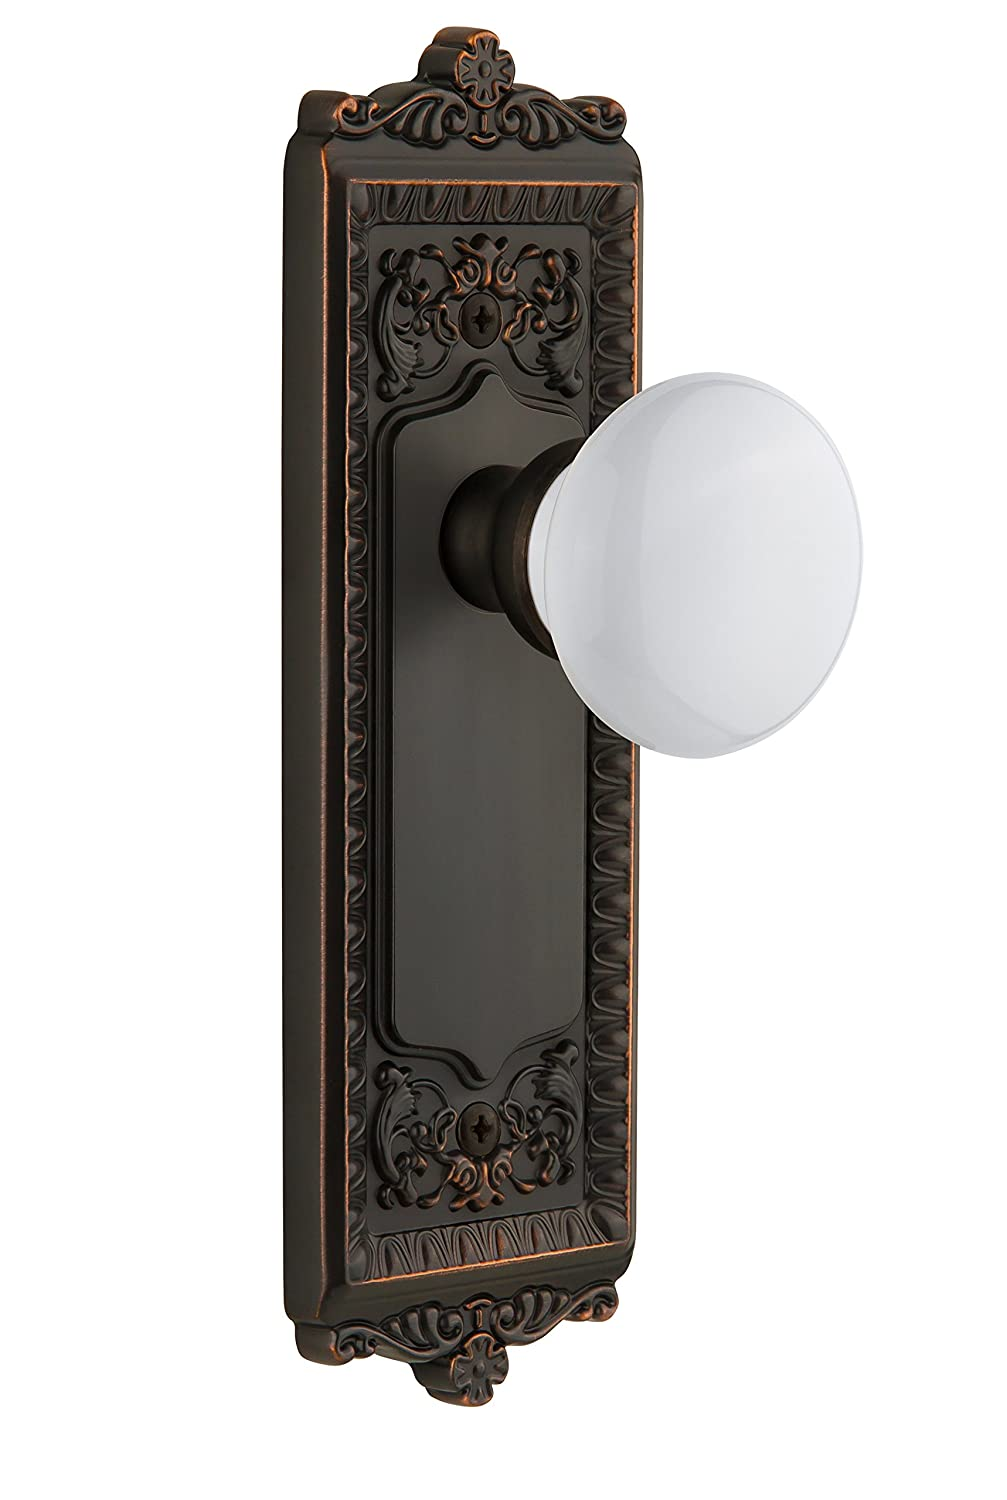 Grandeur Windsor Plate with Hyde Park Knob, Double Dummy, Timeless Bronze